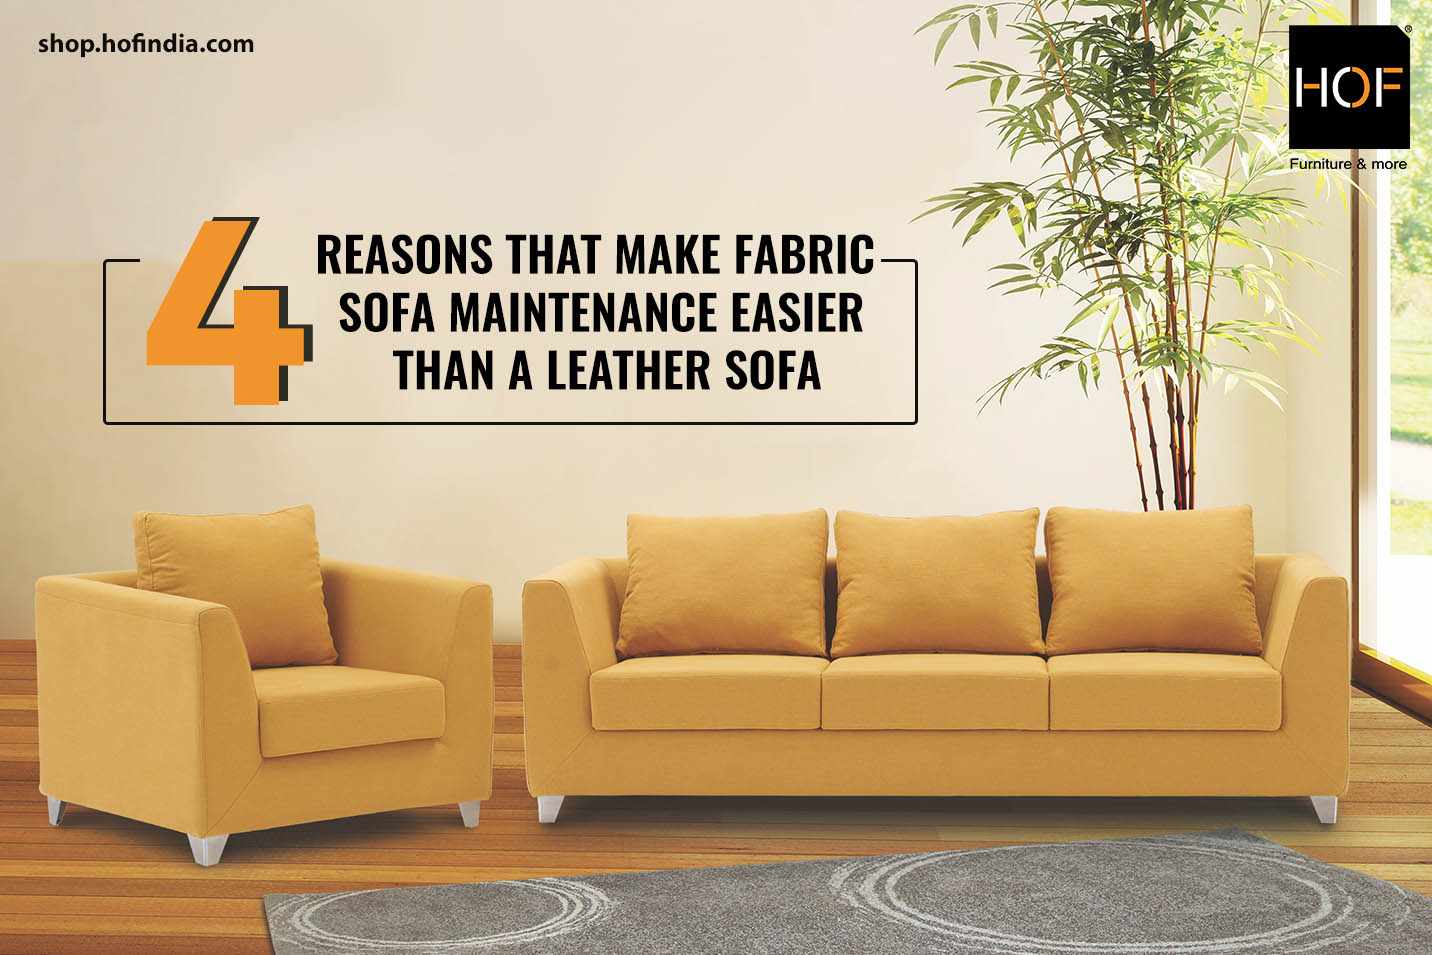 4 reasons that make fabric sofa maintenance easier than a leather sofa